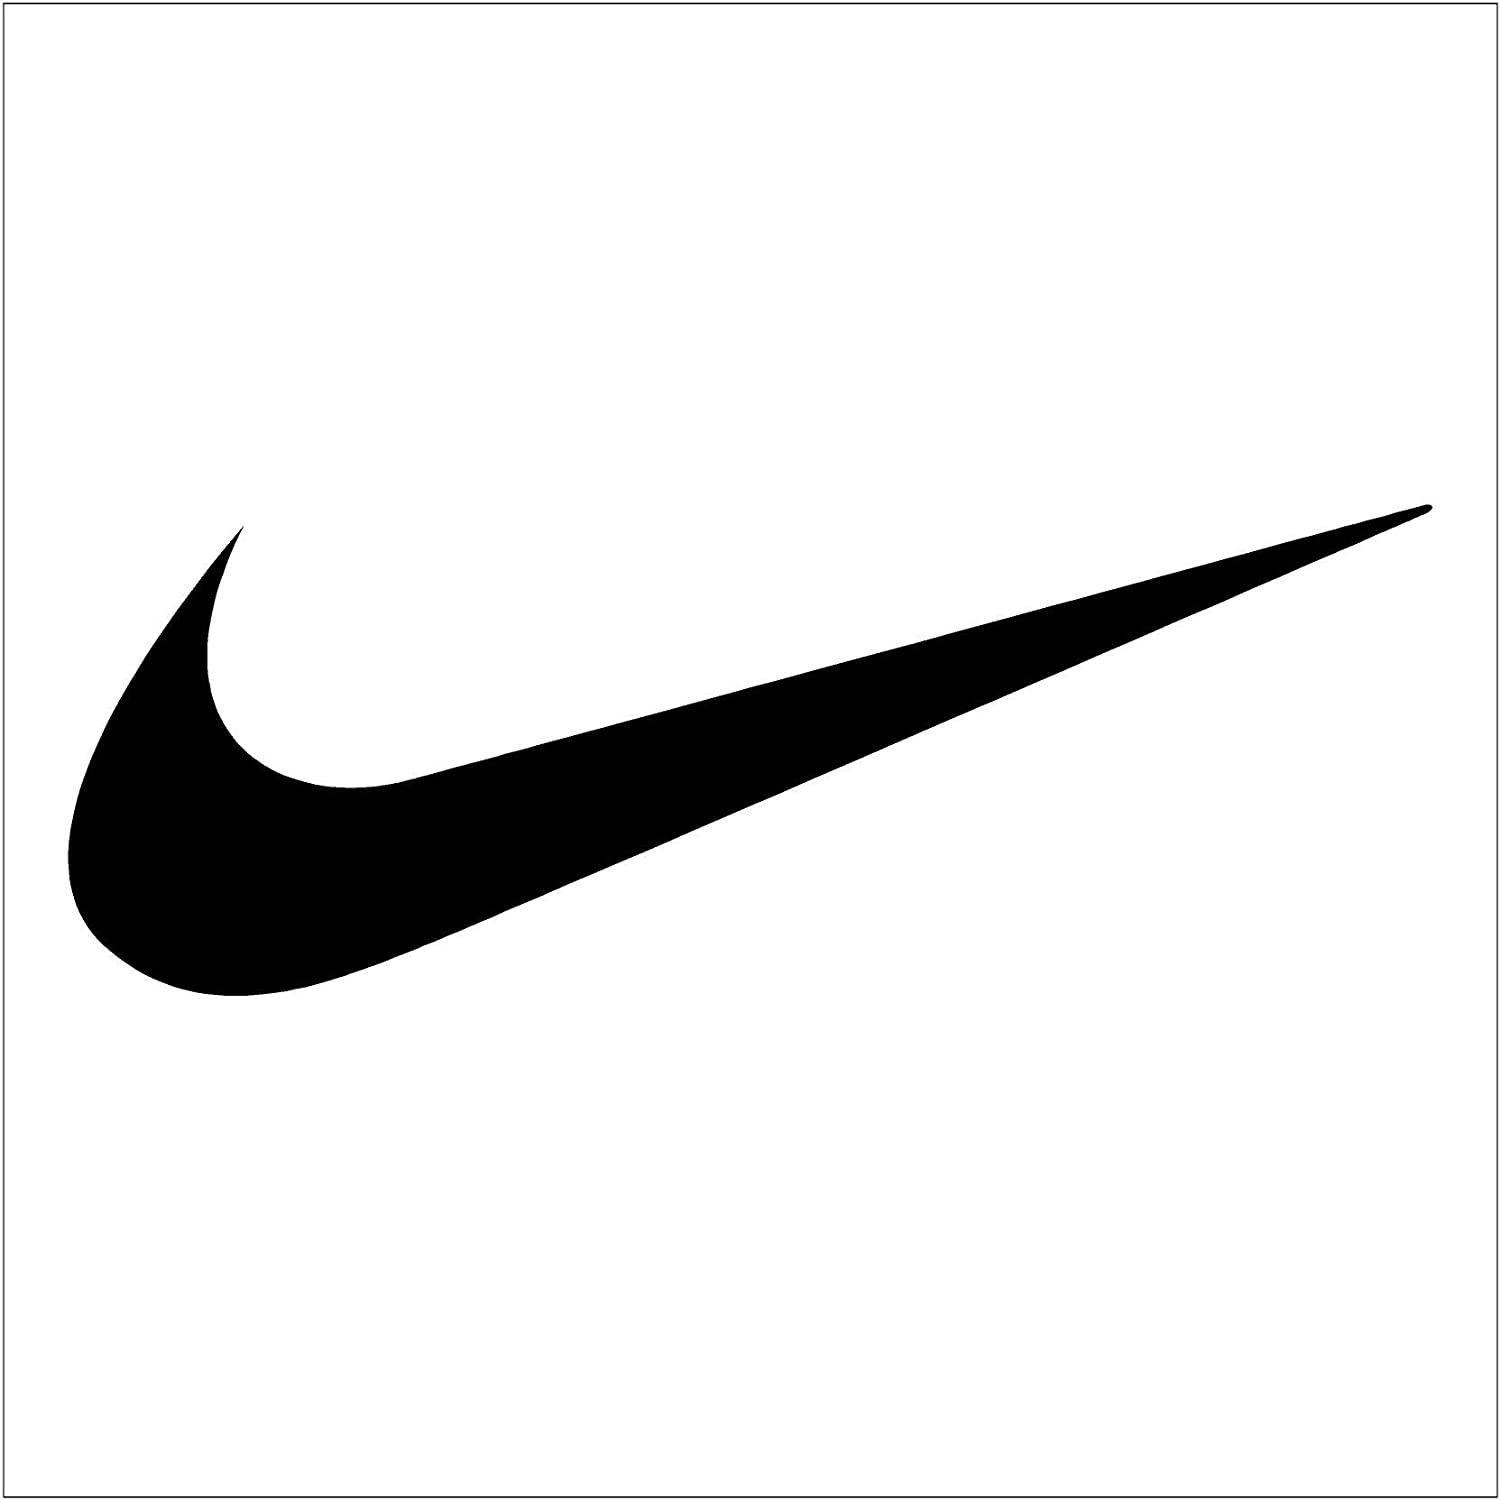 Amazon.com: Crawford Graphix Nike Swoosh Logo Vinyl Sticker 2 Pack ...